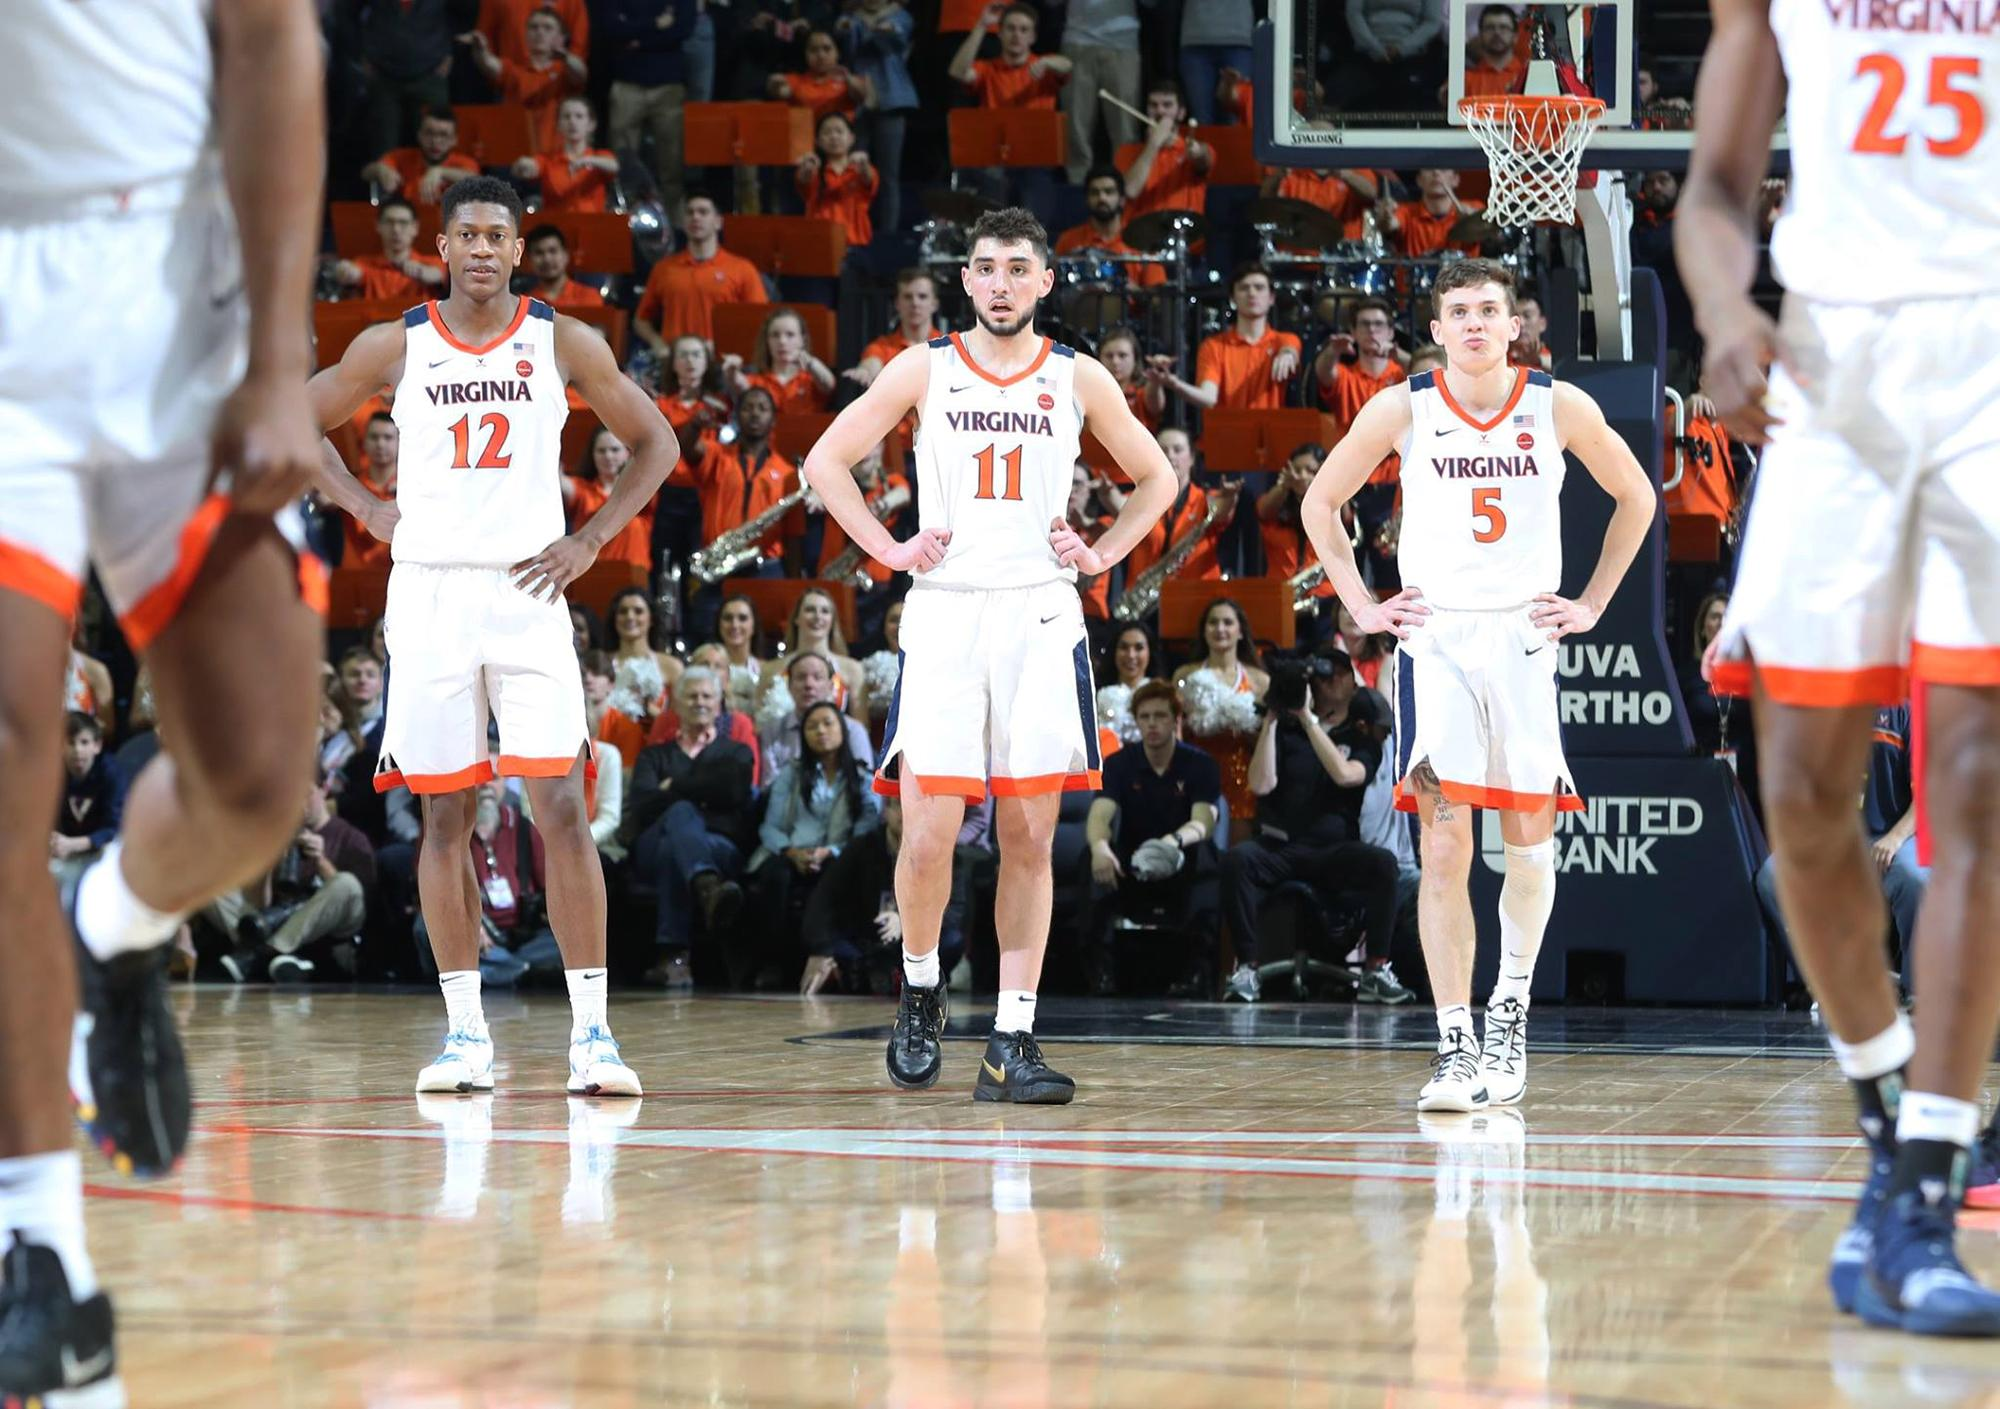 Tony Bennett's squad earned a top seed in this year's NCAA Tournament after winning a share of the ACC regular season title. (Photo by Matt Riley, UVA Athletics)